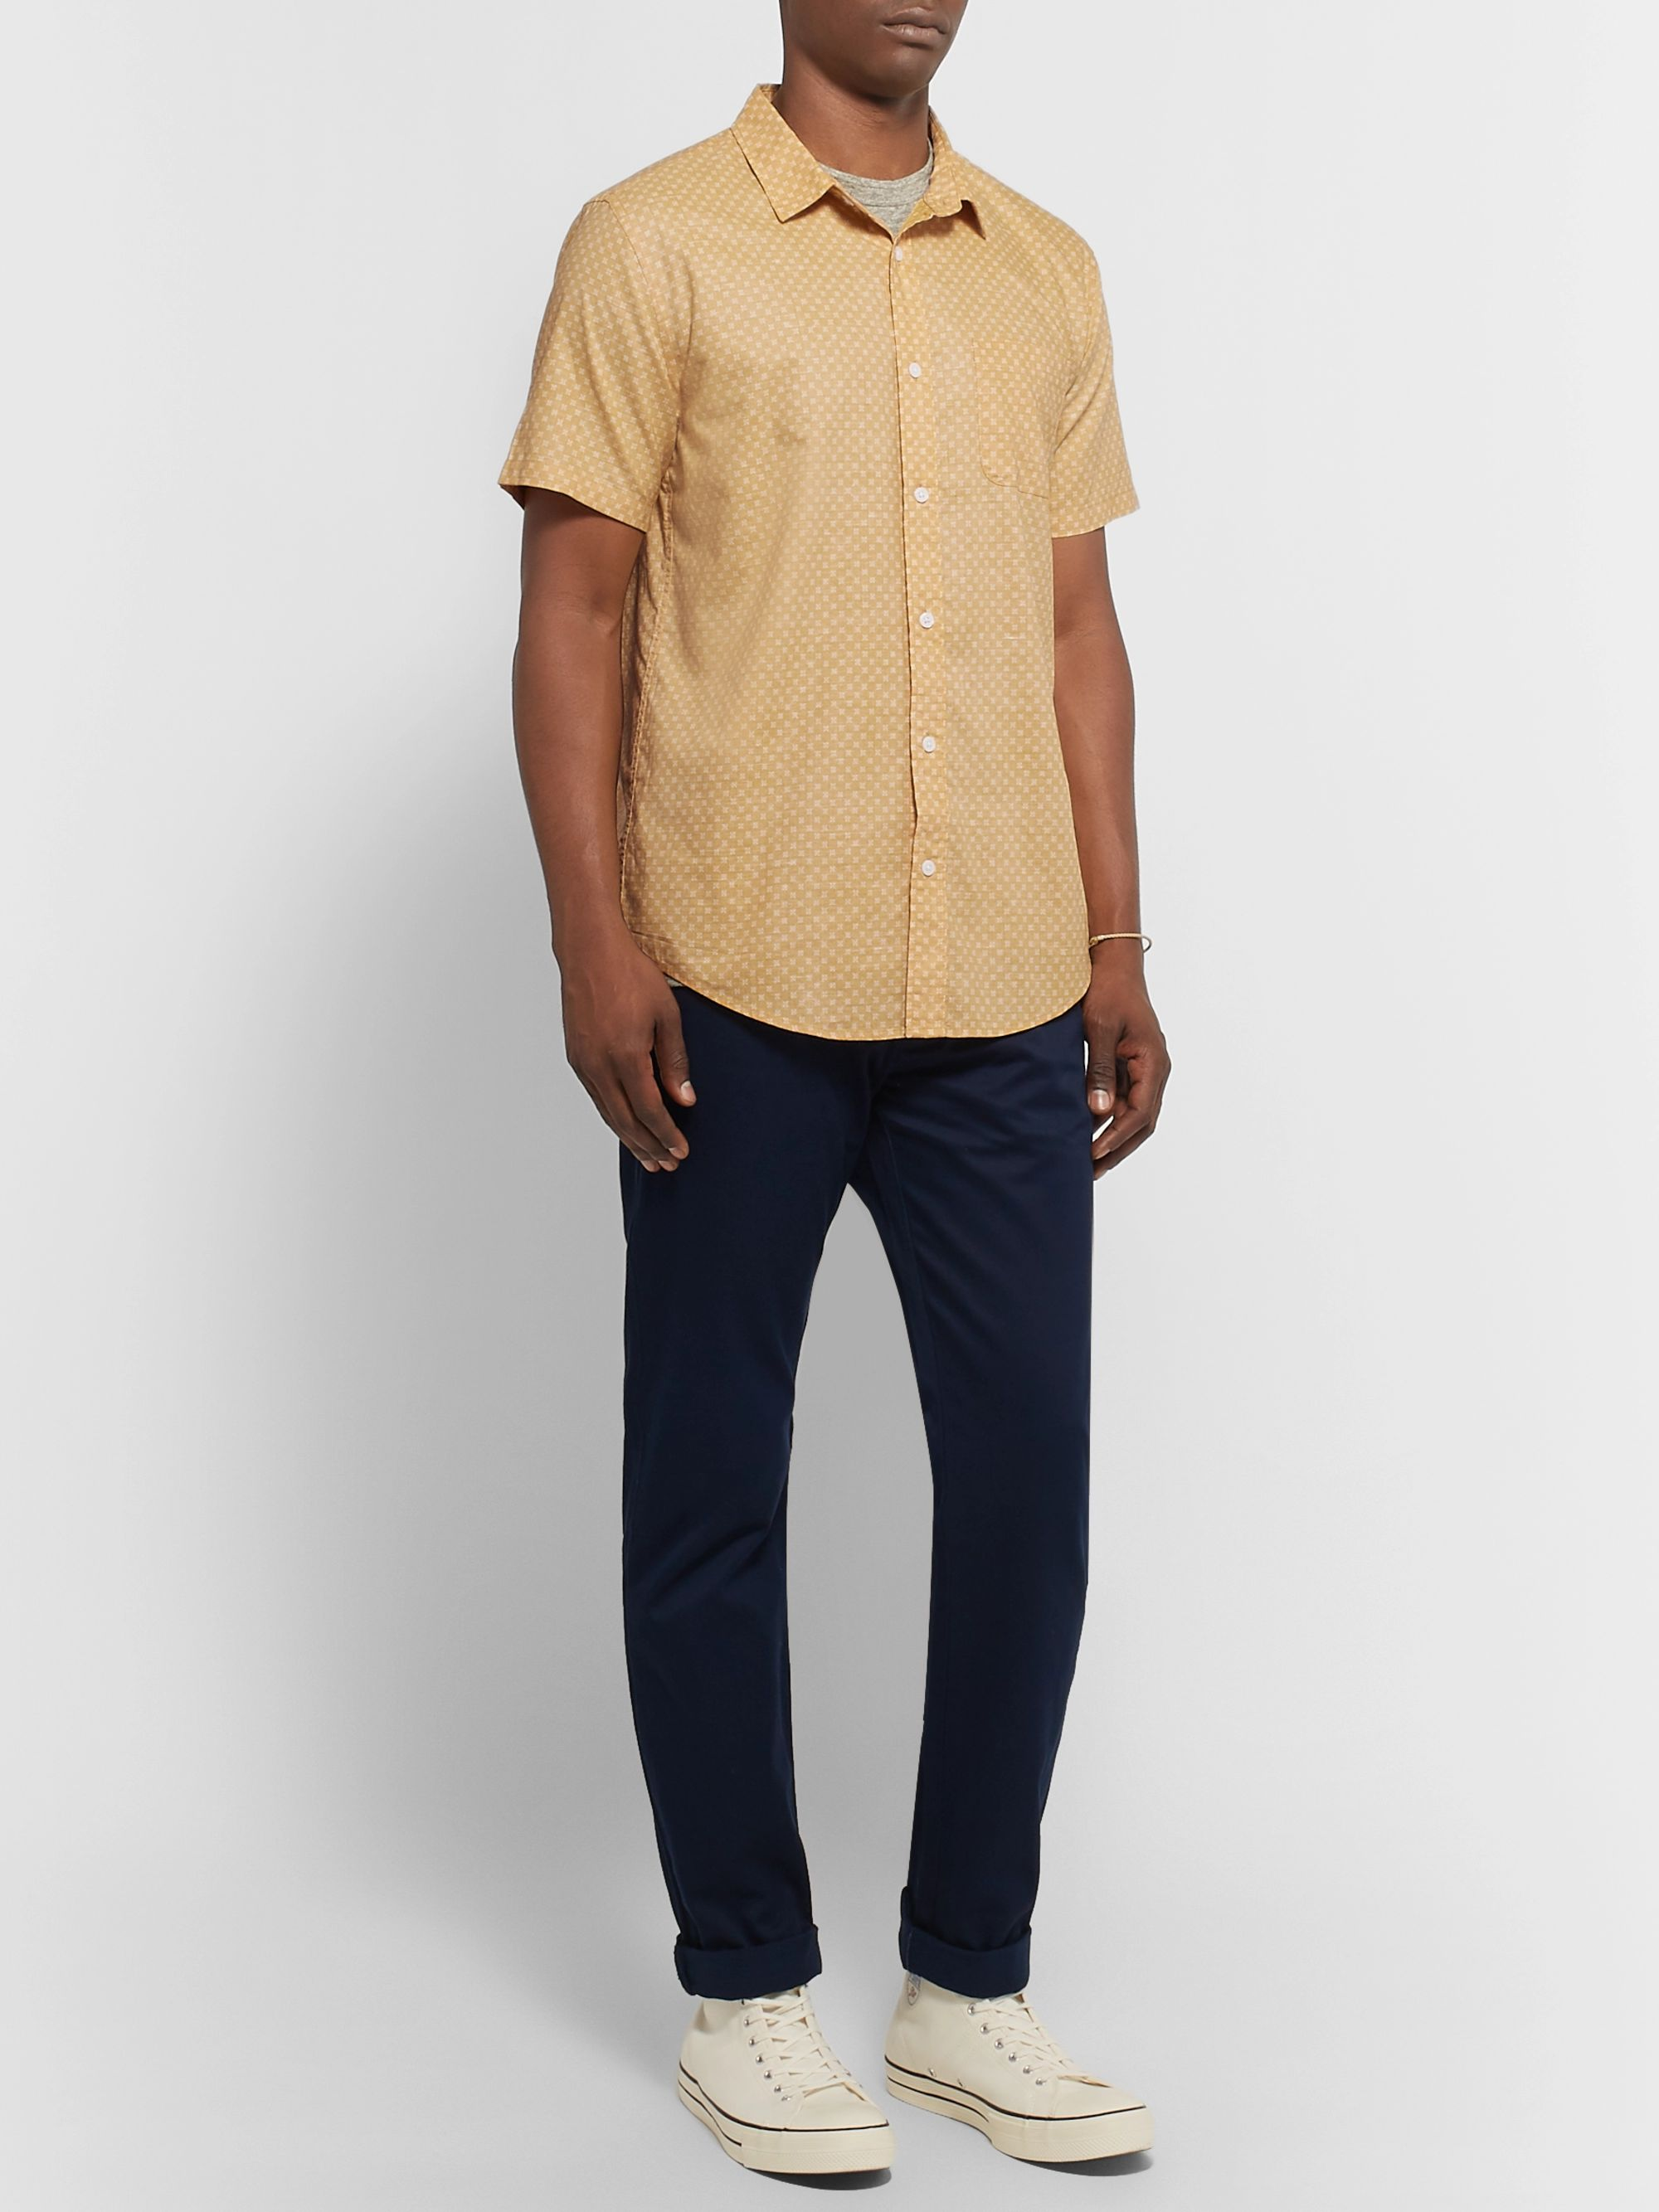 Outerknown S.E.A. Printed Organic Cotton and Hemp-Blend Shirt